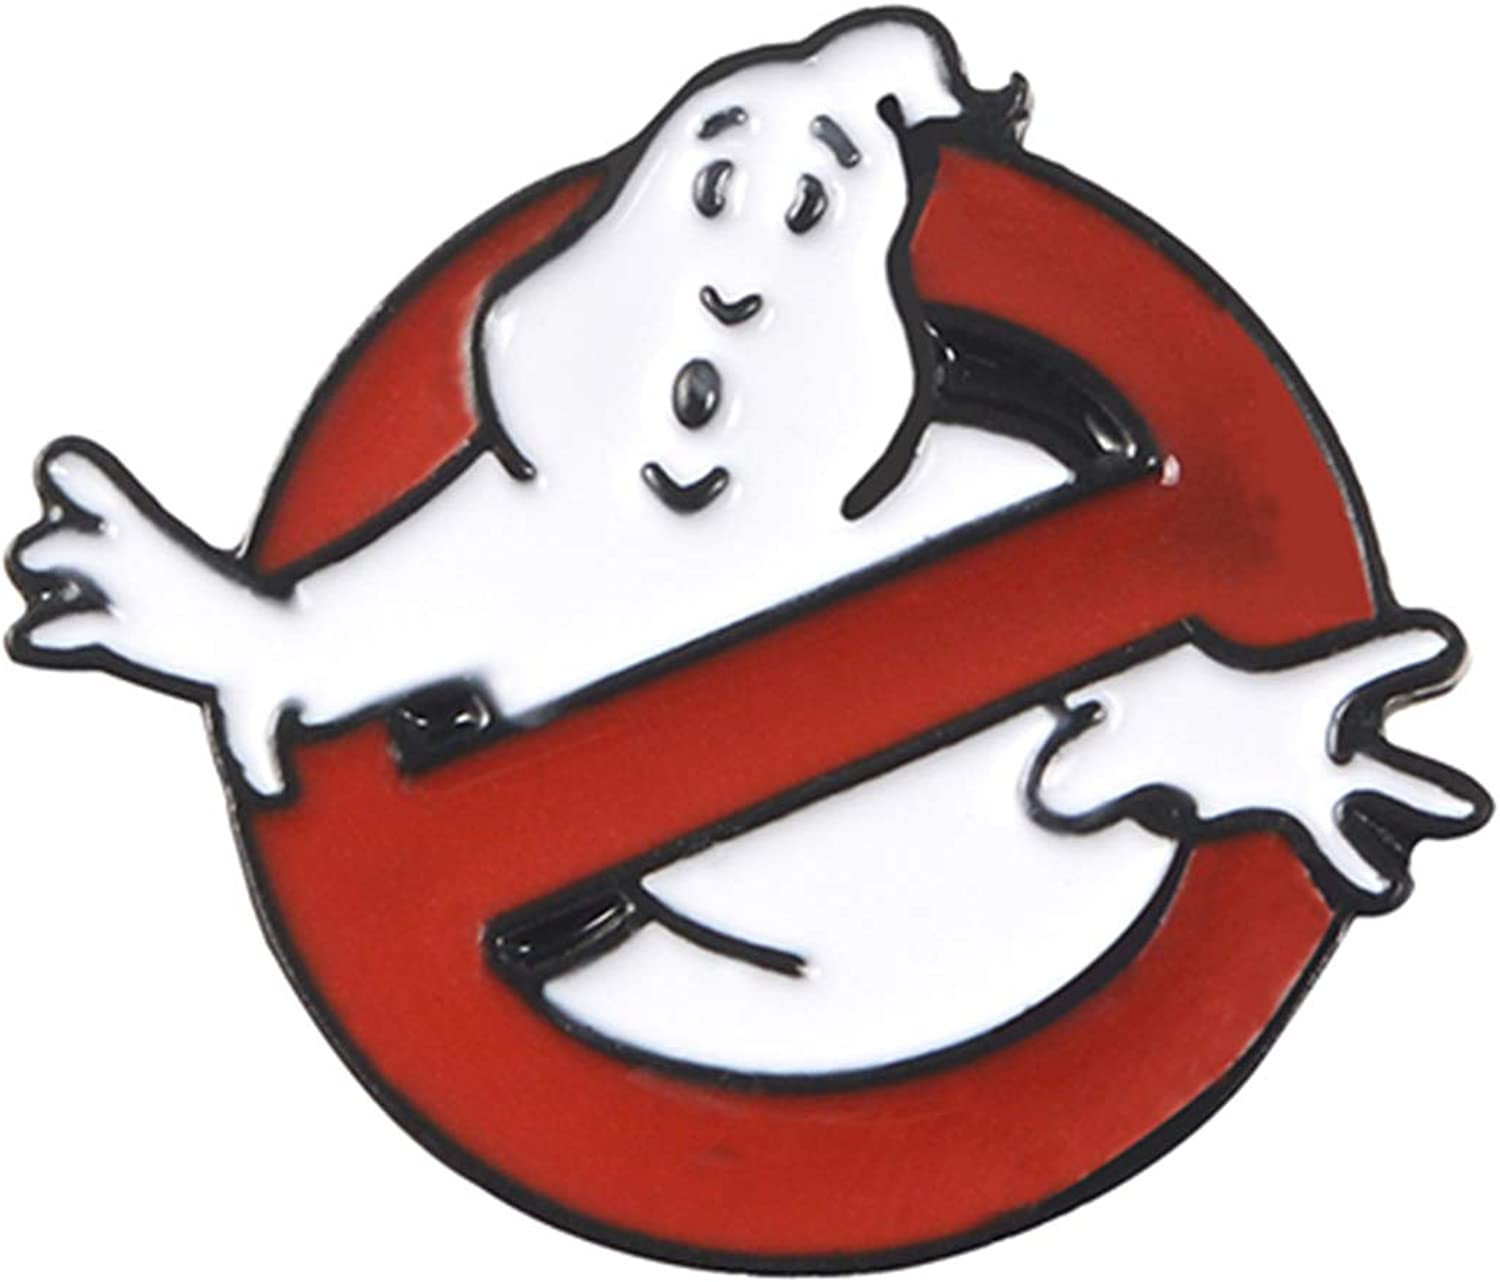 Anffy Ghostbusters Enamel Pin White Cloth Brooch Bag Badge Albuquerque Max 87% OFF Mall Ghost